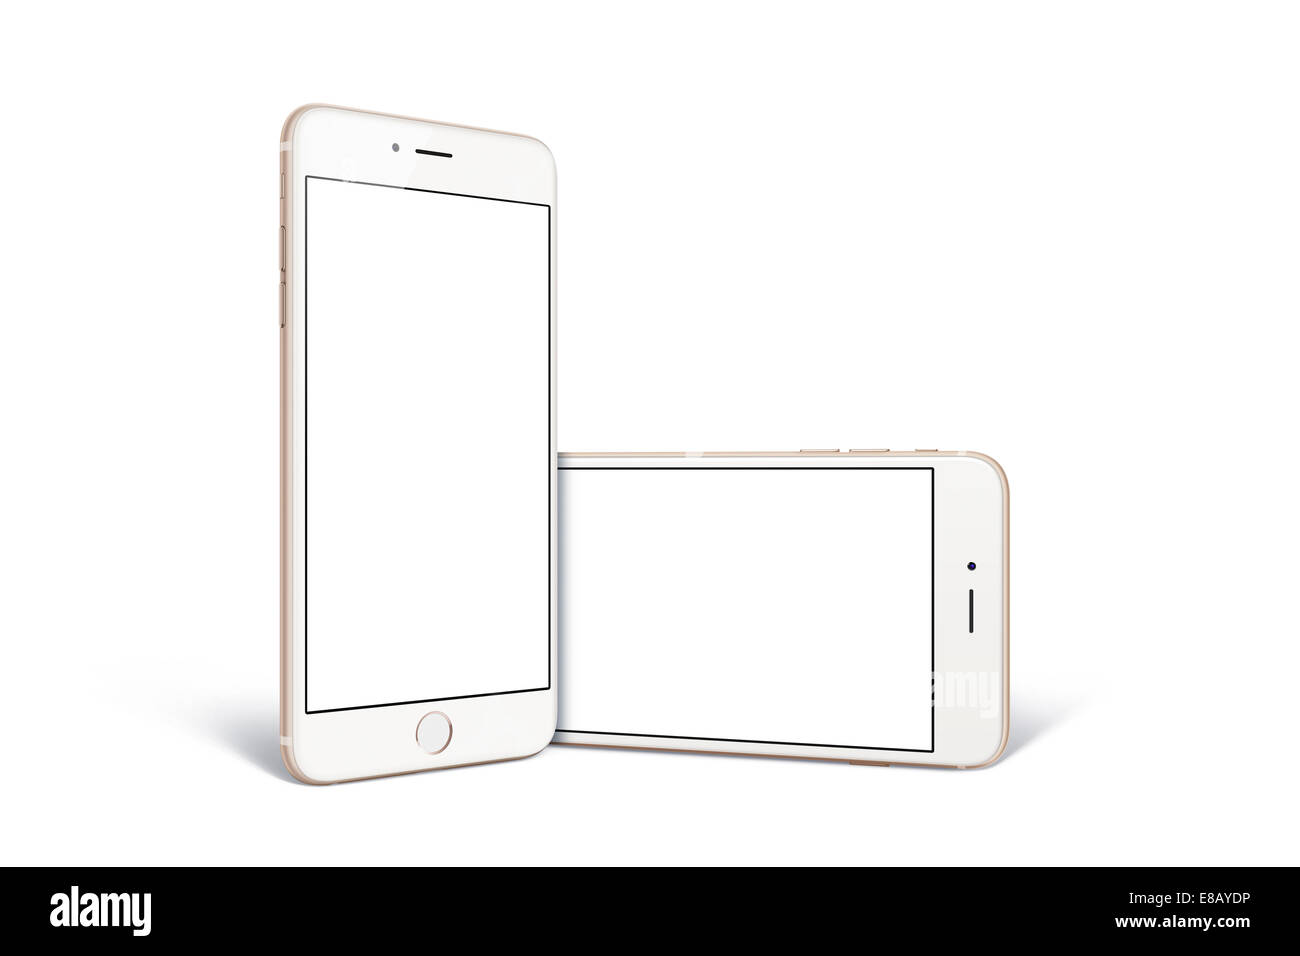 Digitally generated image of cell phones, new iphone 6, gold. - Stock Image